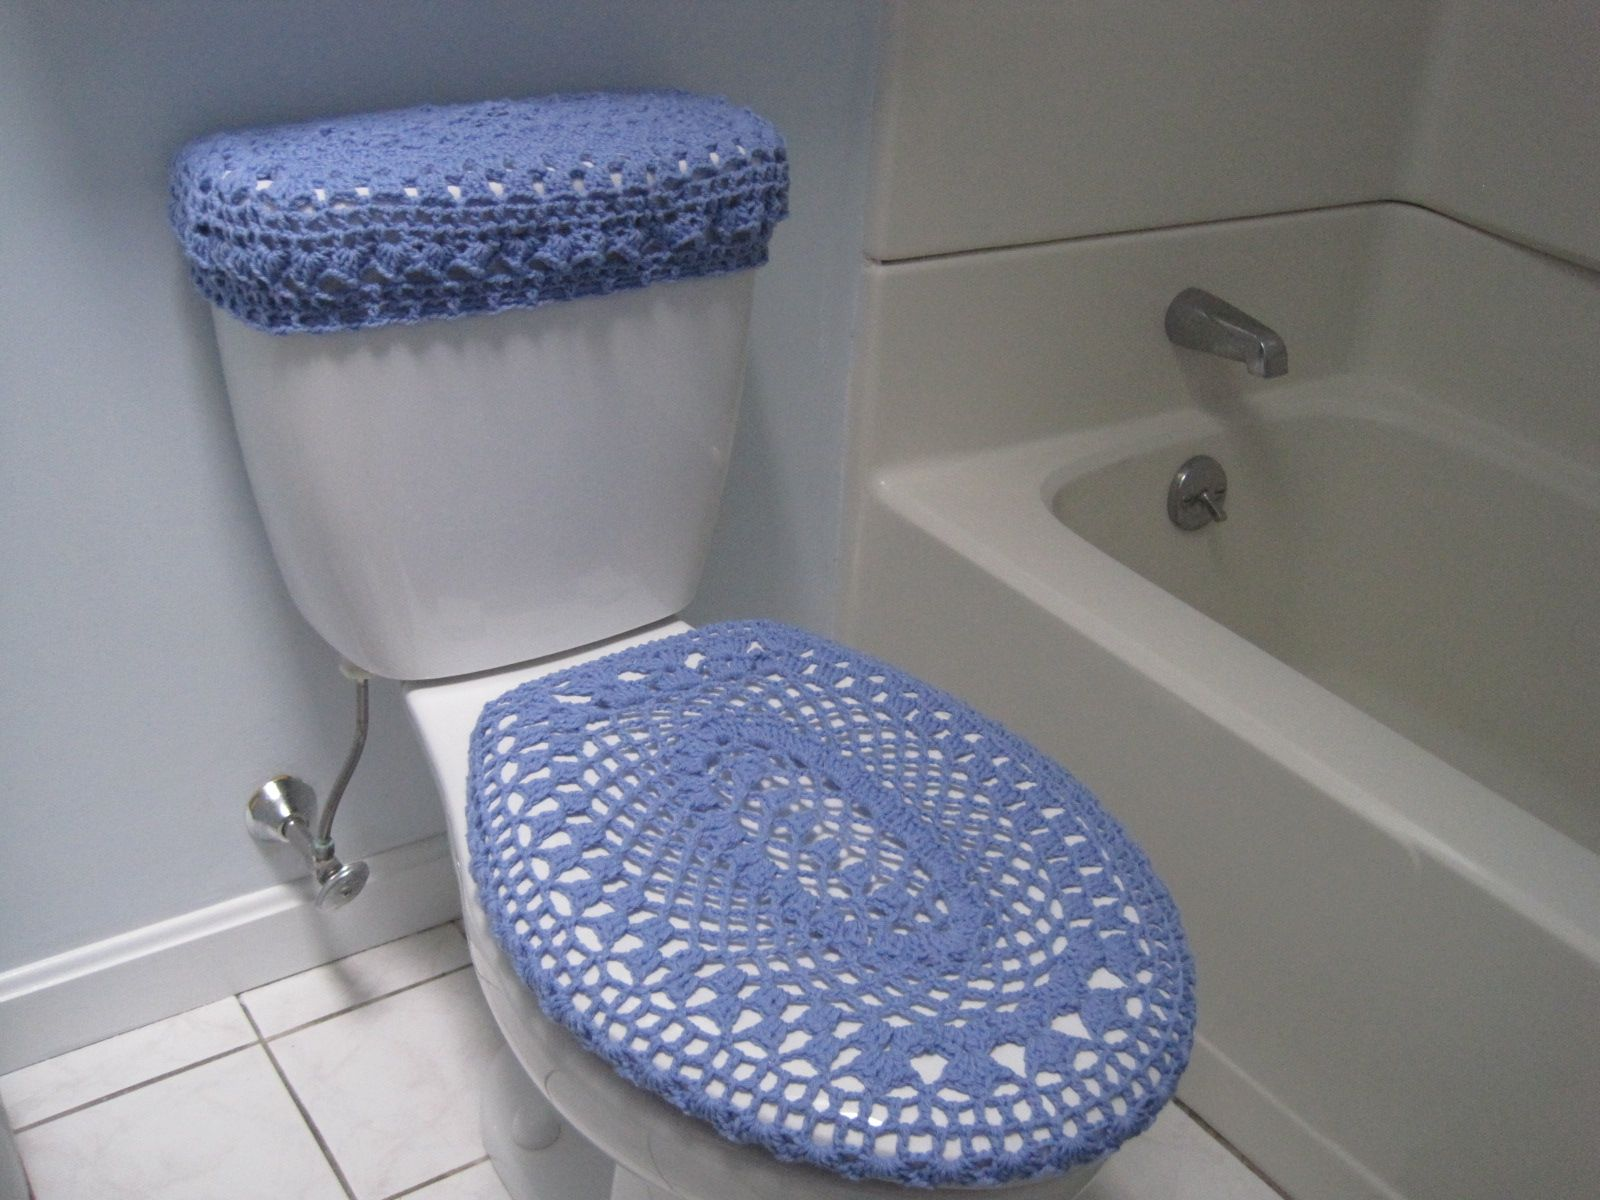 Set Of 2 Crochet Covers For Toilet Seat U0026 Toilet Tank Lid, Cozies .